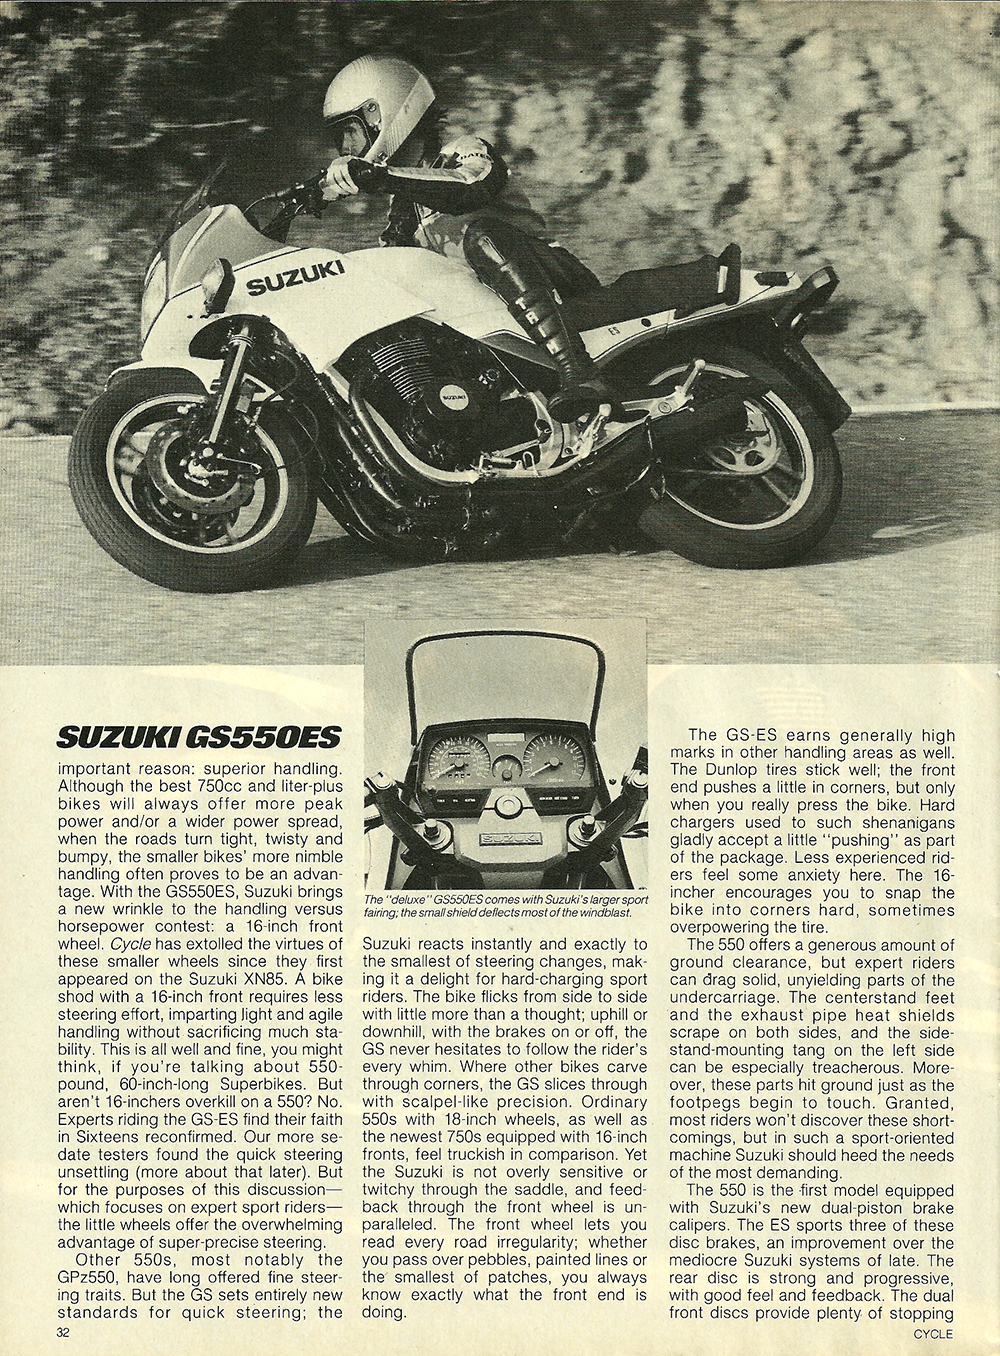 1983 Suzuki GS550ES road test 3.jpg